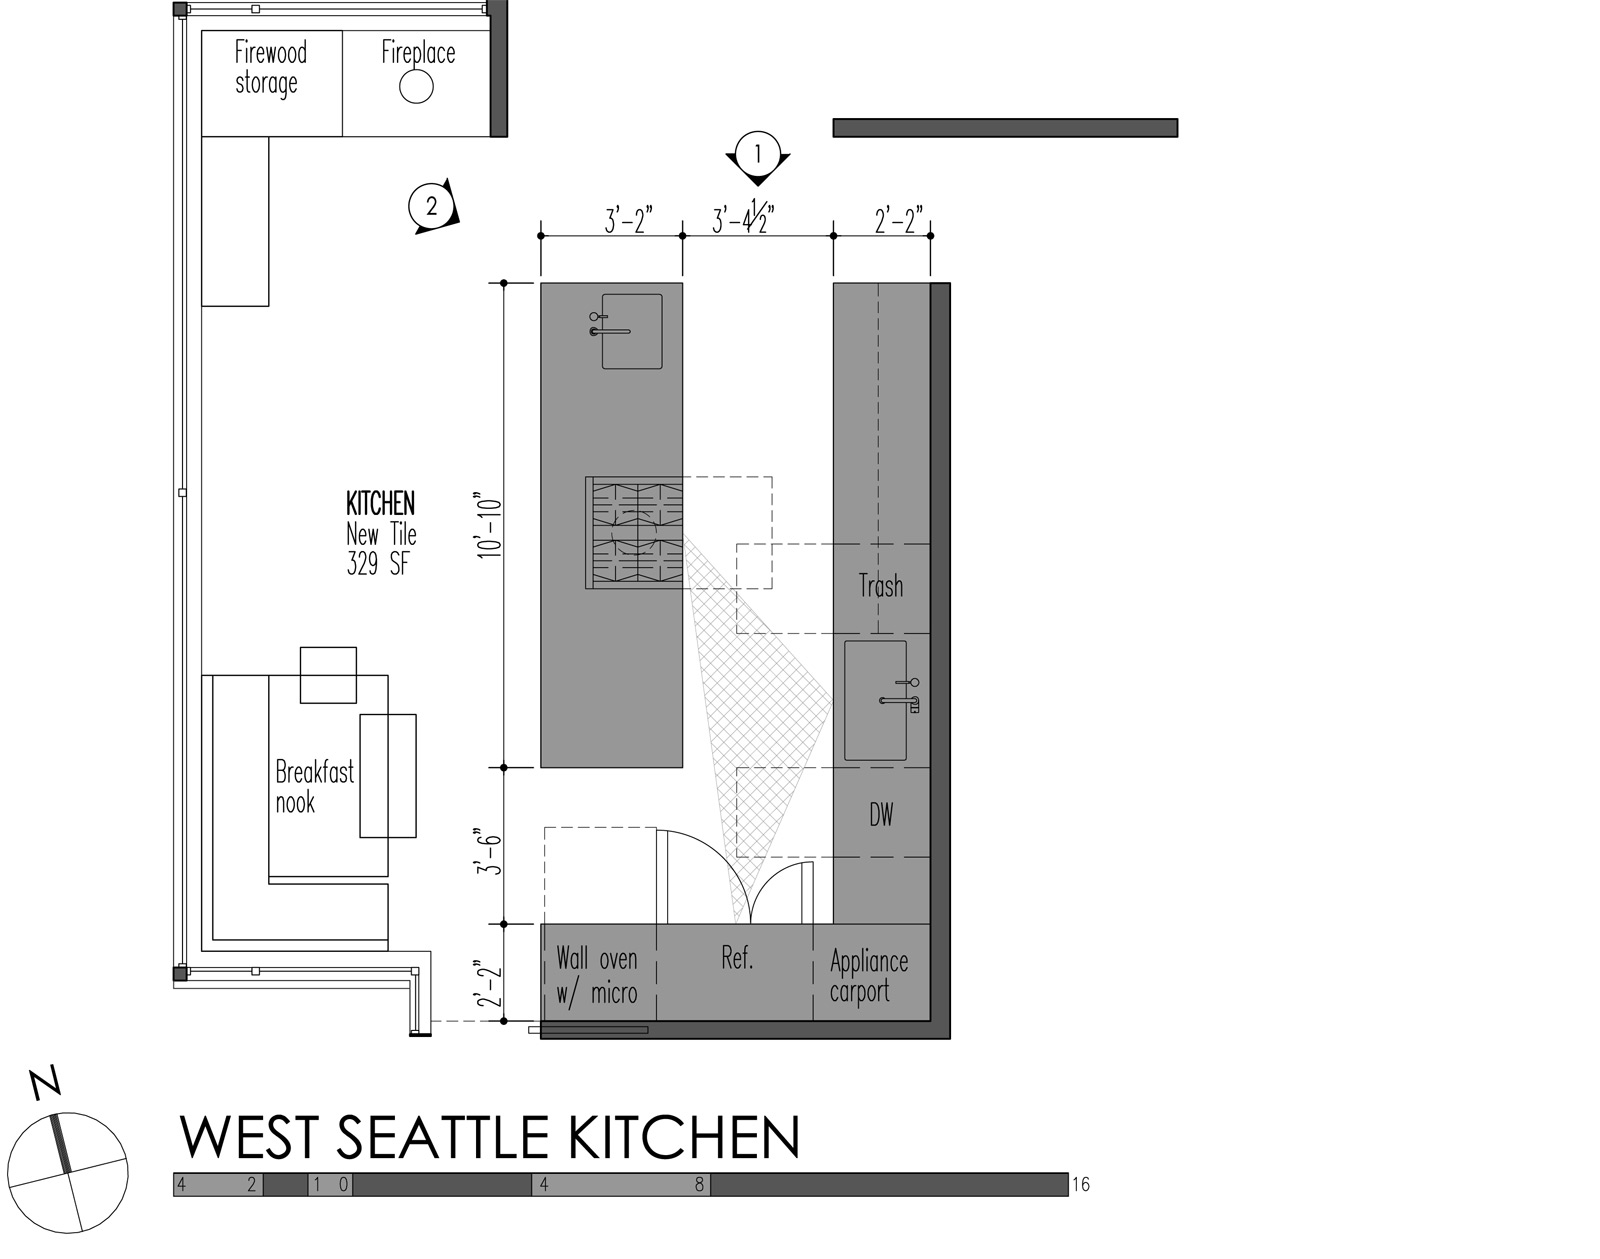 superb Kitchen Appliance Sizes #10: West-Seattle-Kitchen-plan